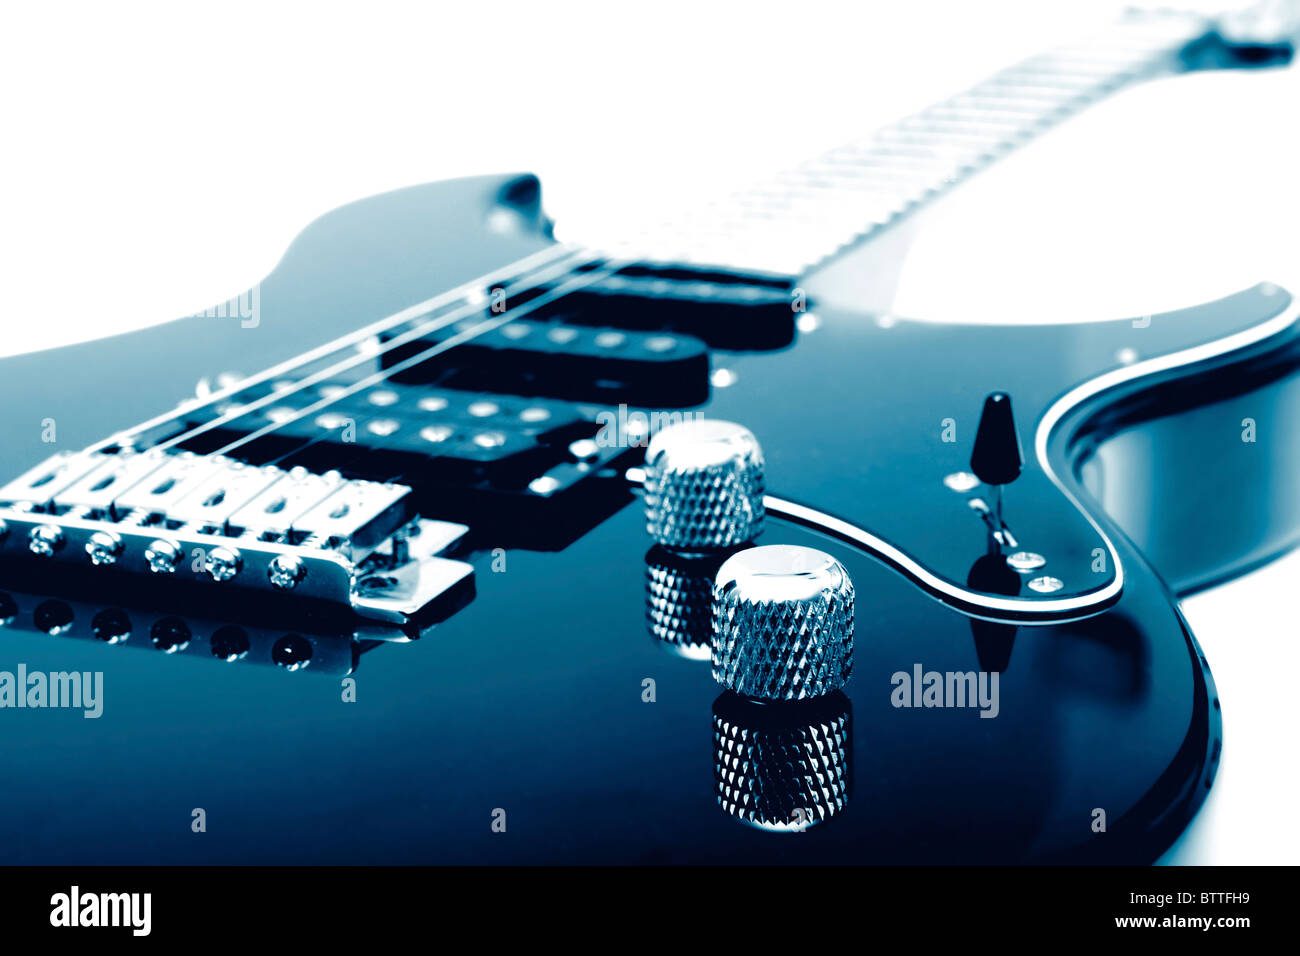 Electric guitar closeup - Stock Image